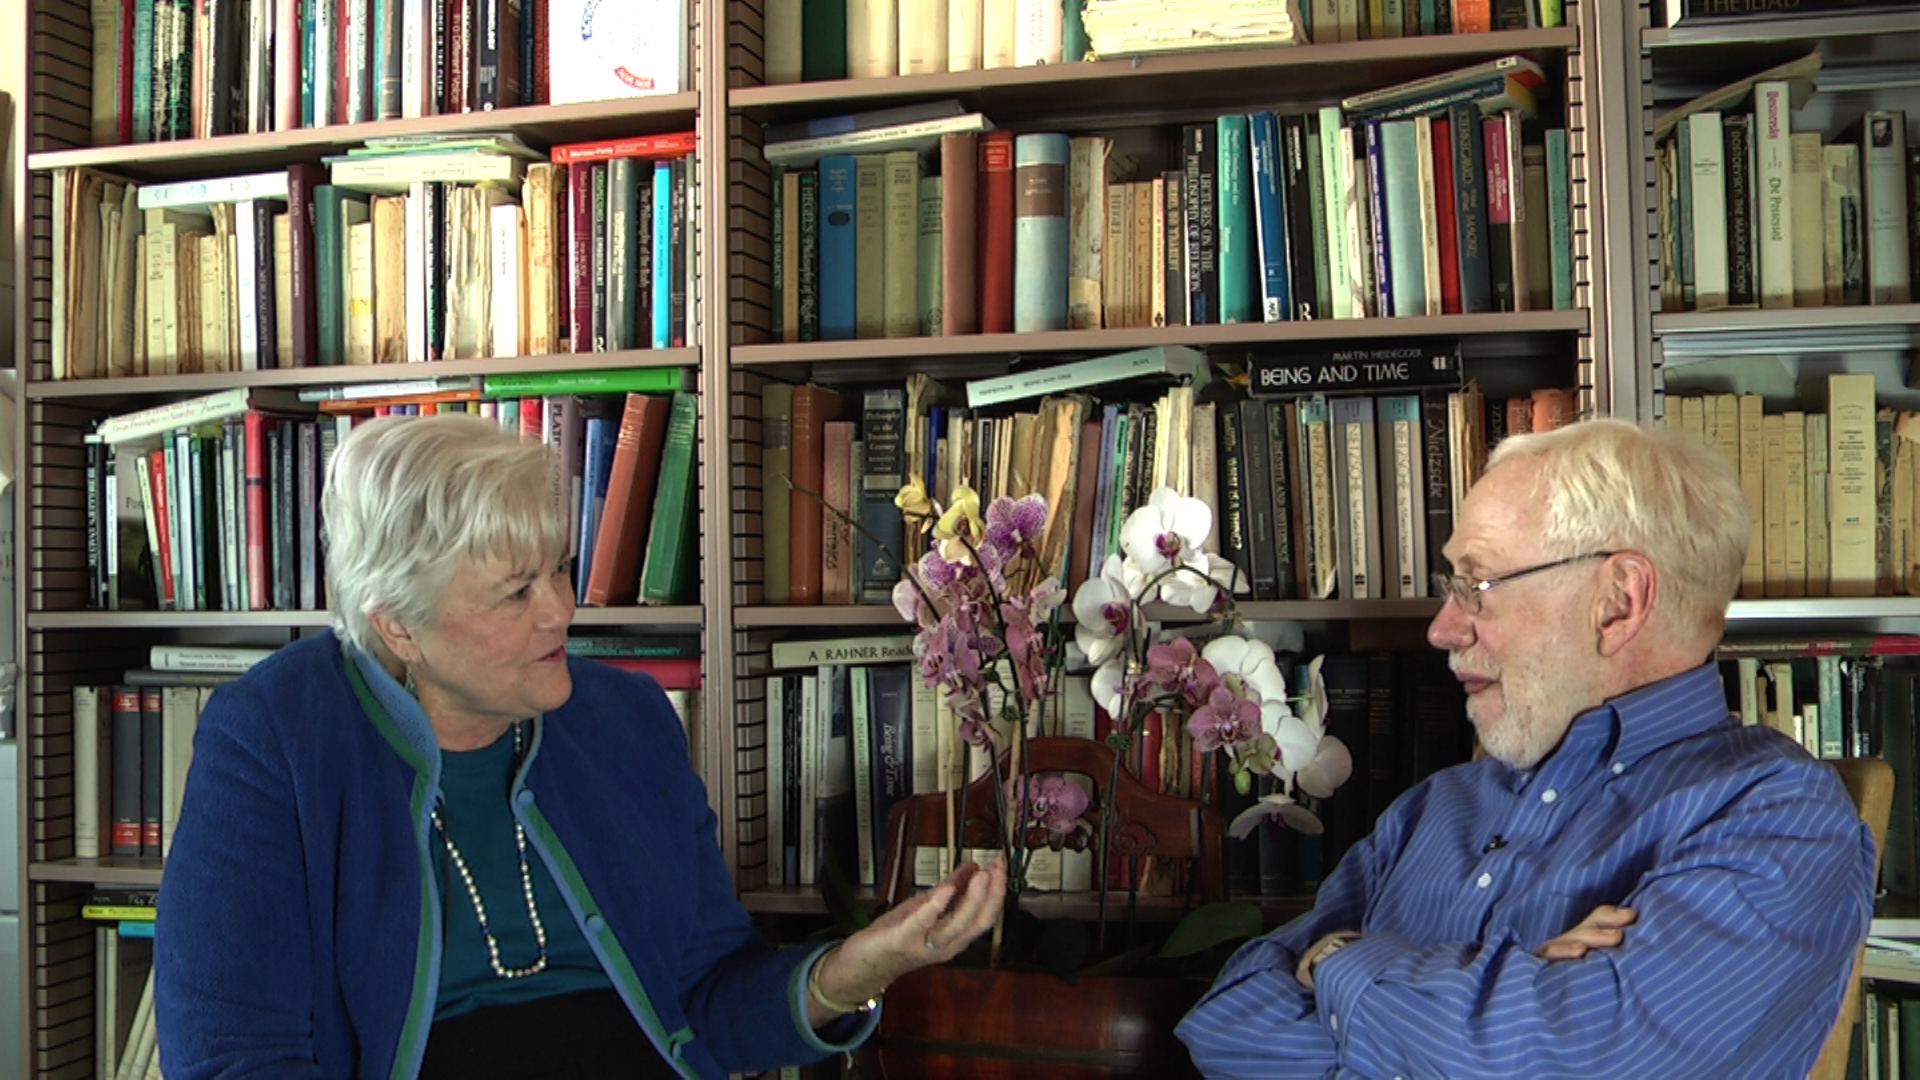 Bert Dreyfus and Patricia Benner in discussion